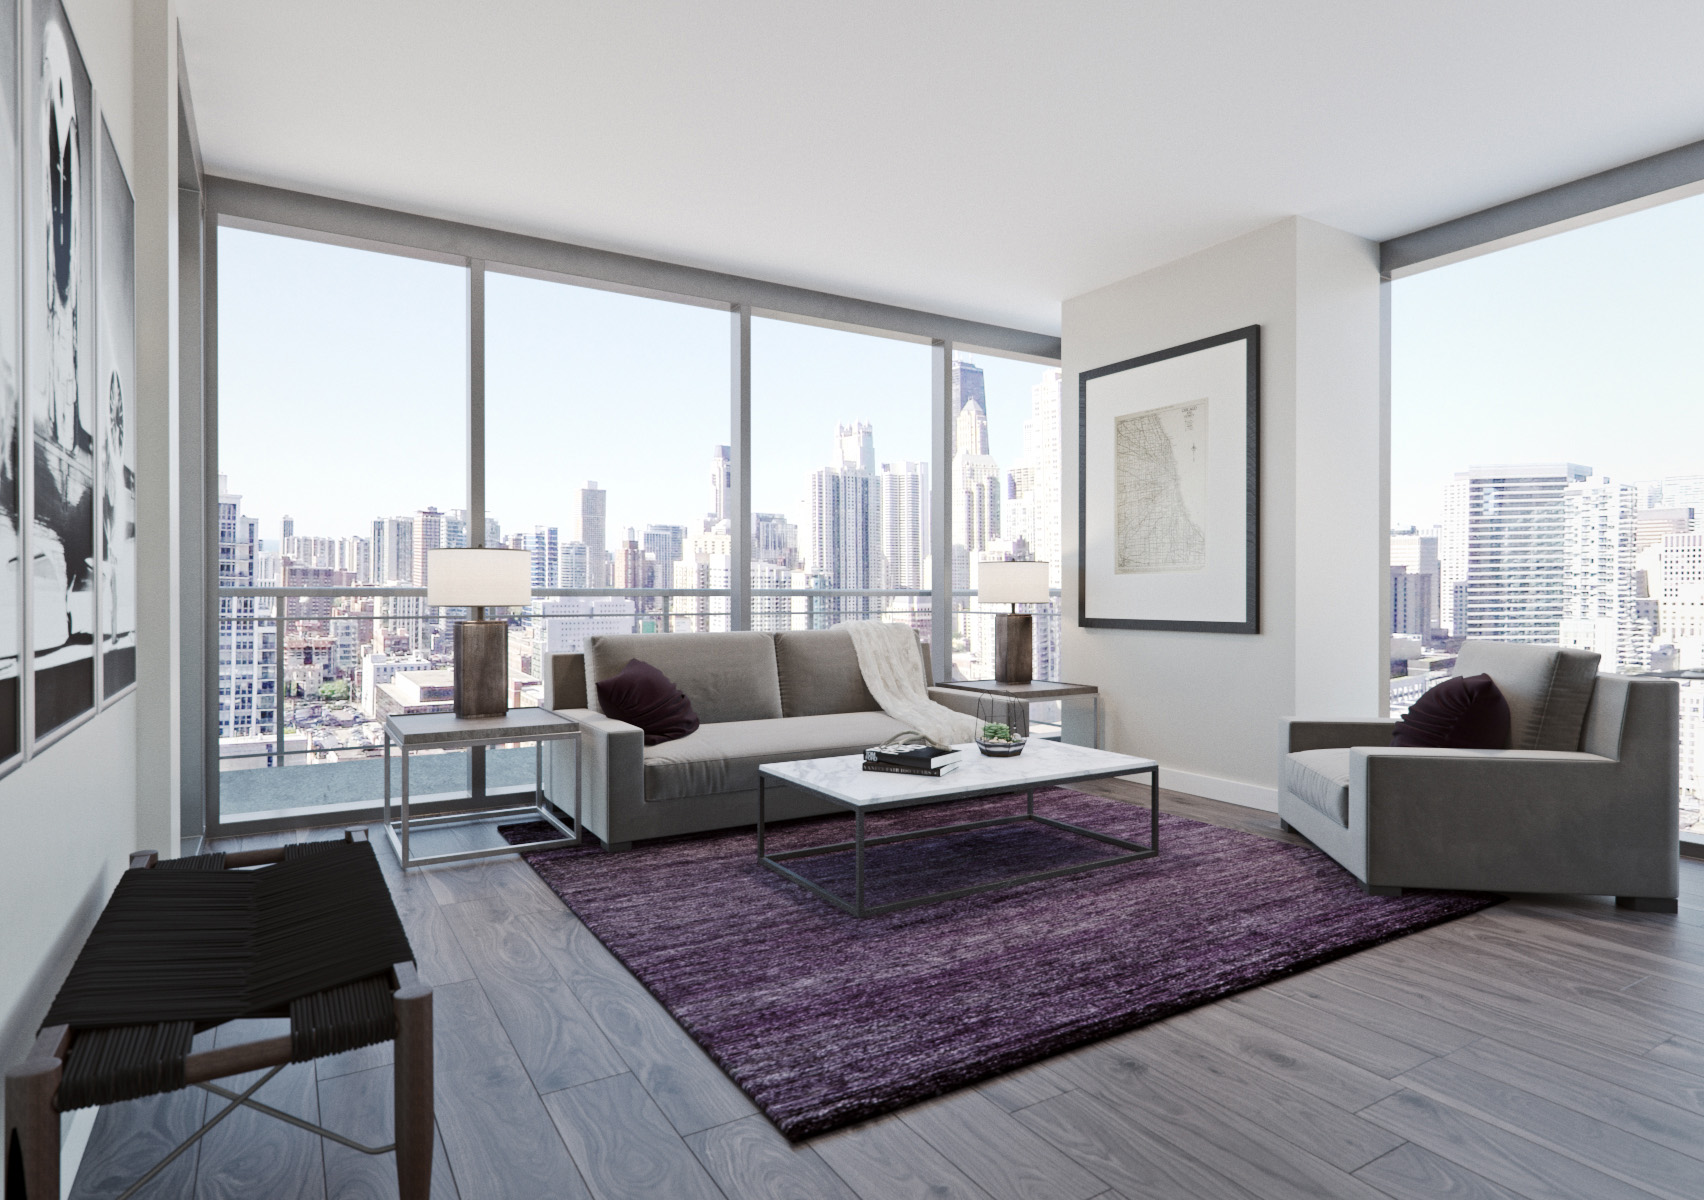 SOPHISTICATED INTERIORS. - + CONTEMPORARY DESIGN TO COMPLIMENT YOUR URBAN LIFESTYLE+ THOUGHTFUL FLOORPLANS WITH SWEEPING VIEWS OF THE CHICAGO SKYLINE+RESIDENCES THAT PROVIDE A REMARKABLE LIFESTYLE.+ CURATED SELECTION OF SUPERIOR FINISHES.